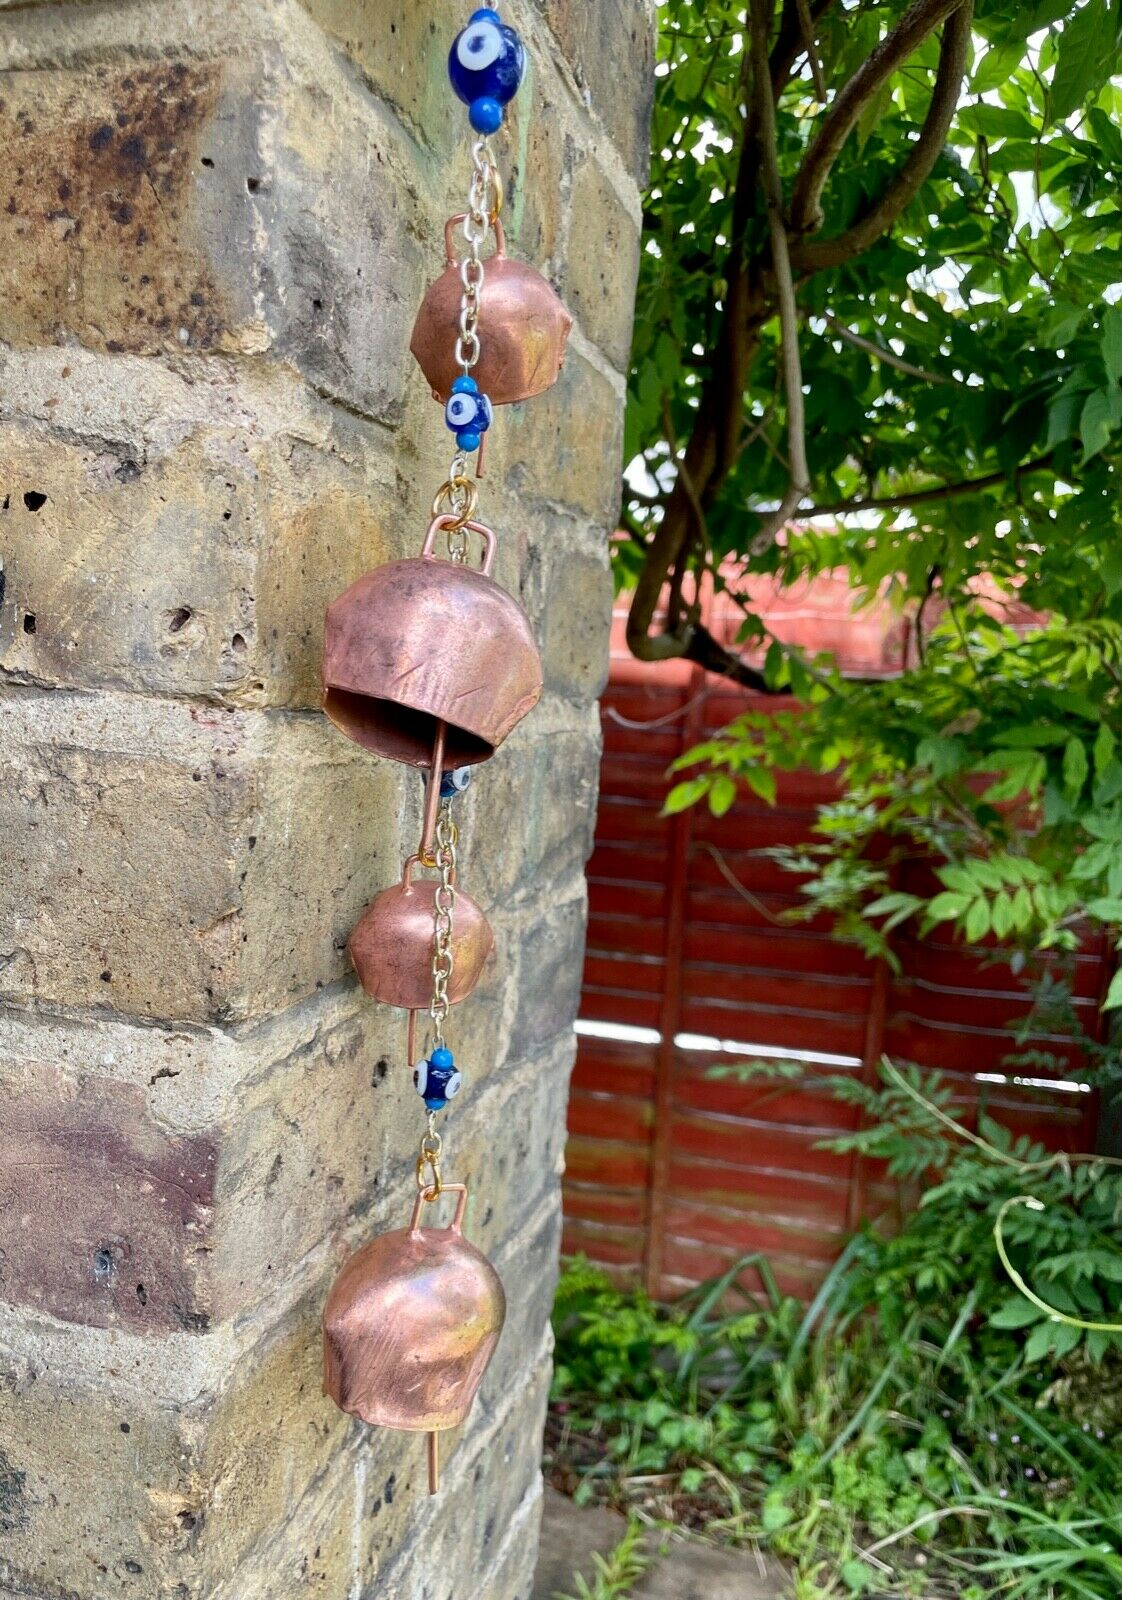 Copper Bells Door/Wall Hanging Glass Evil Eye Beads, Wind-chime, Home Decor